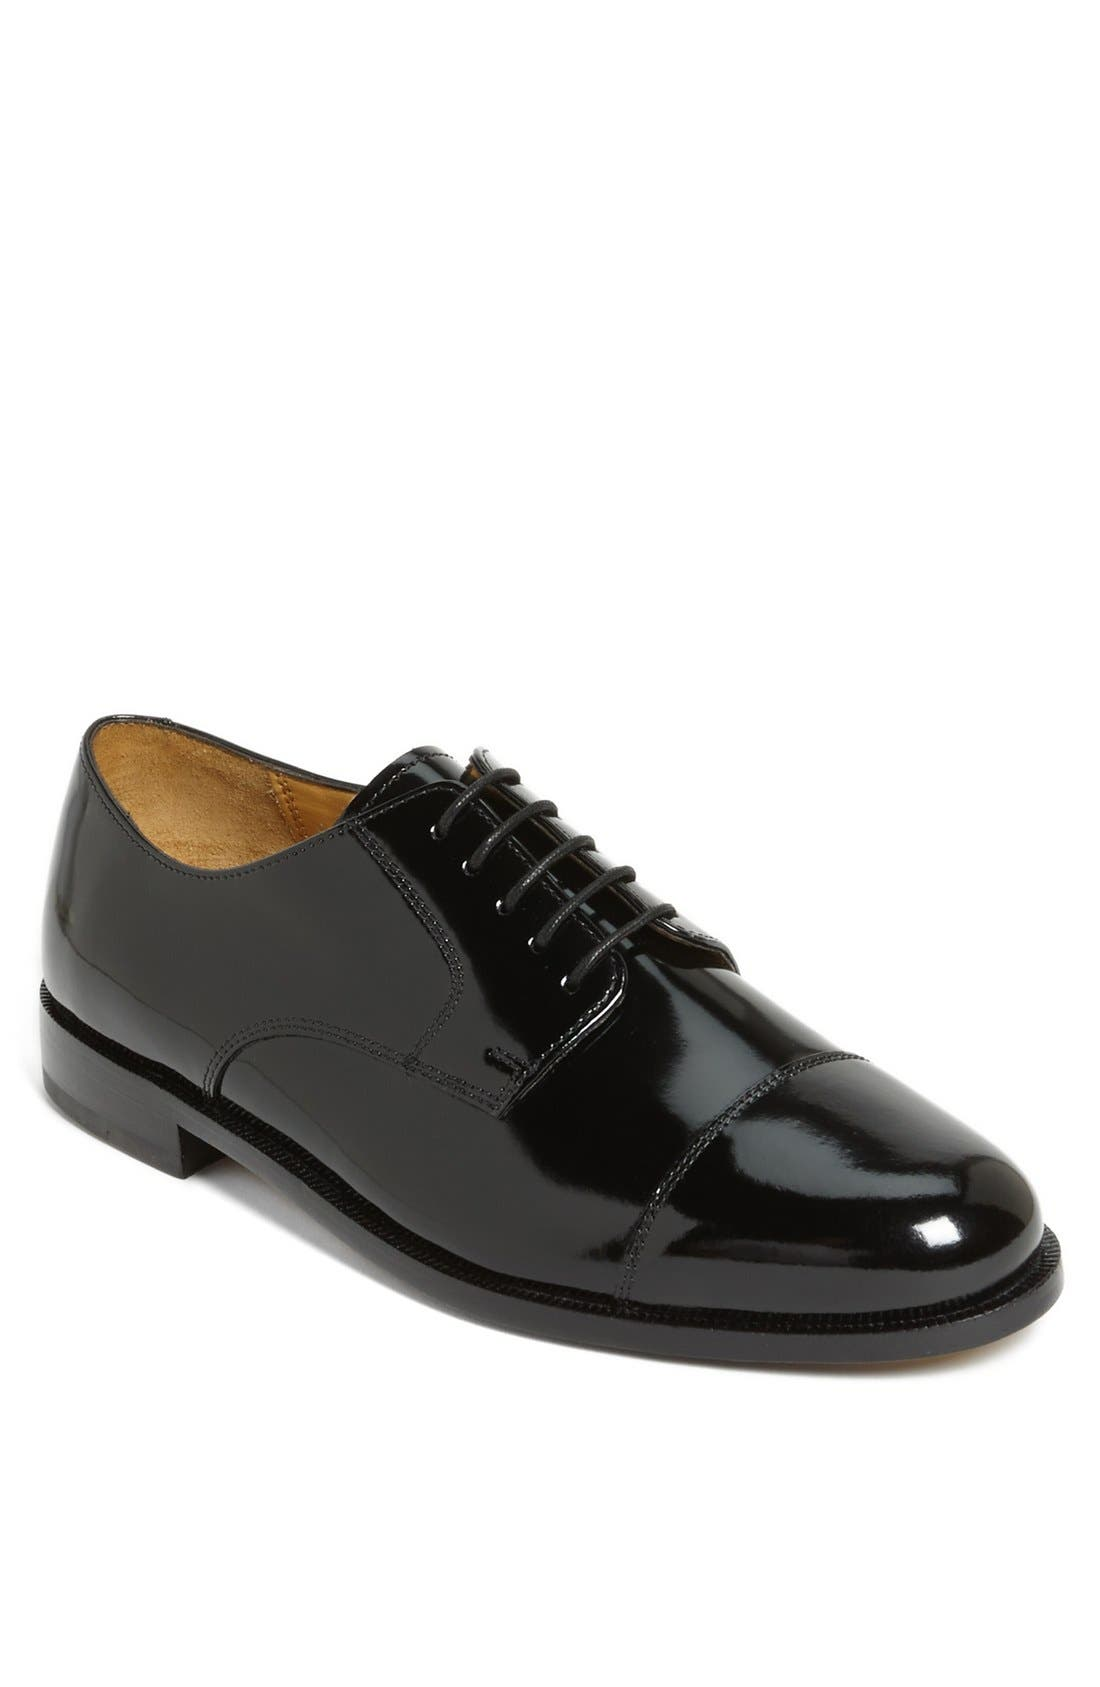 Alternate Image 1 Selected - Cole Haan 'Caldwell' Derby (Online Only)   (Men)